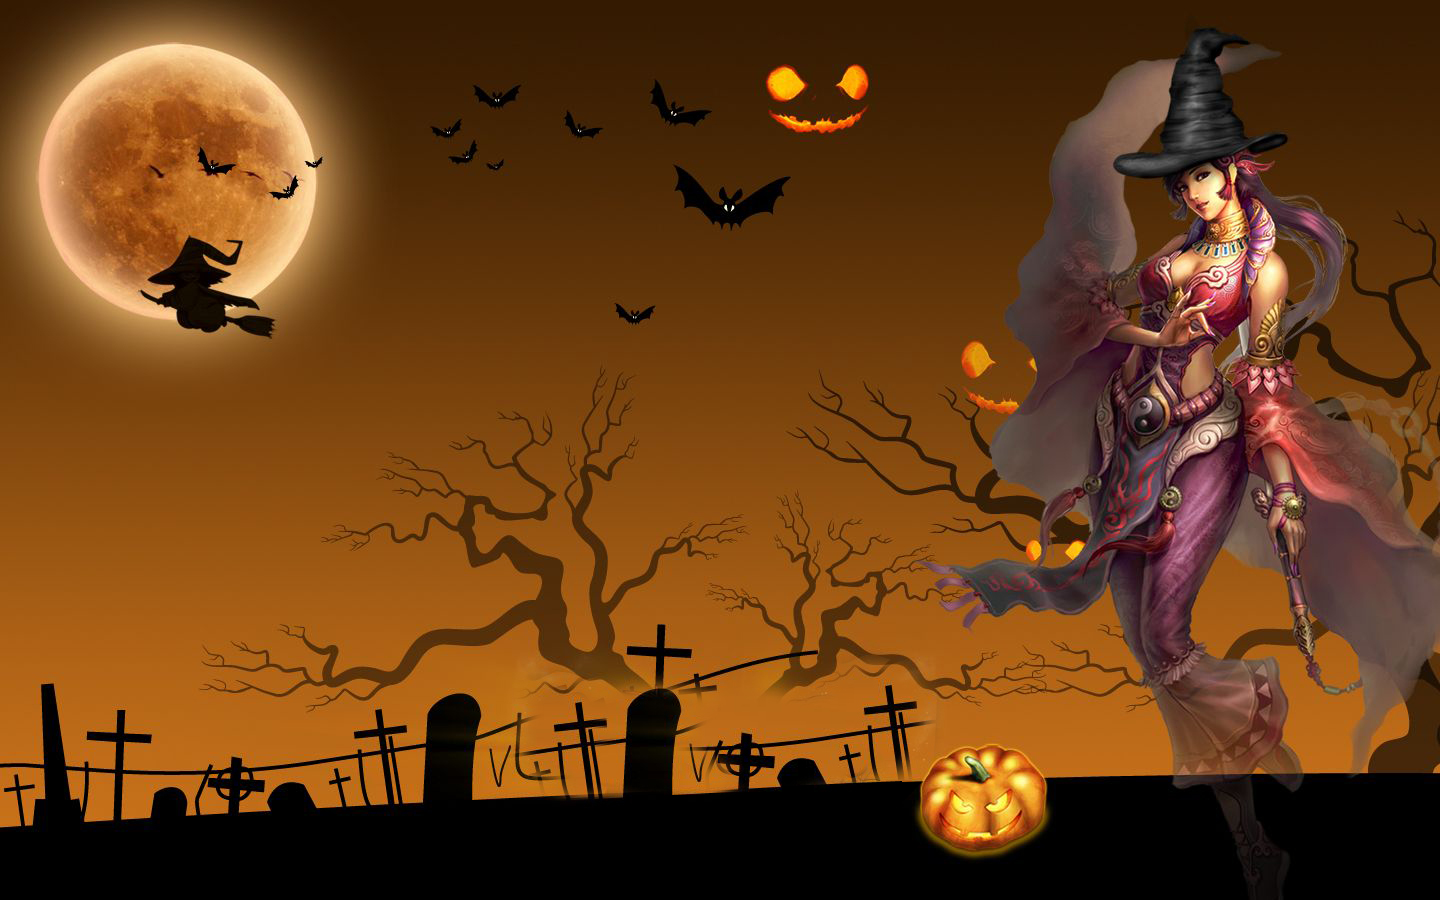 New Trend hallowen images